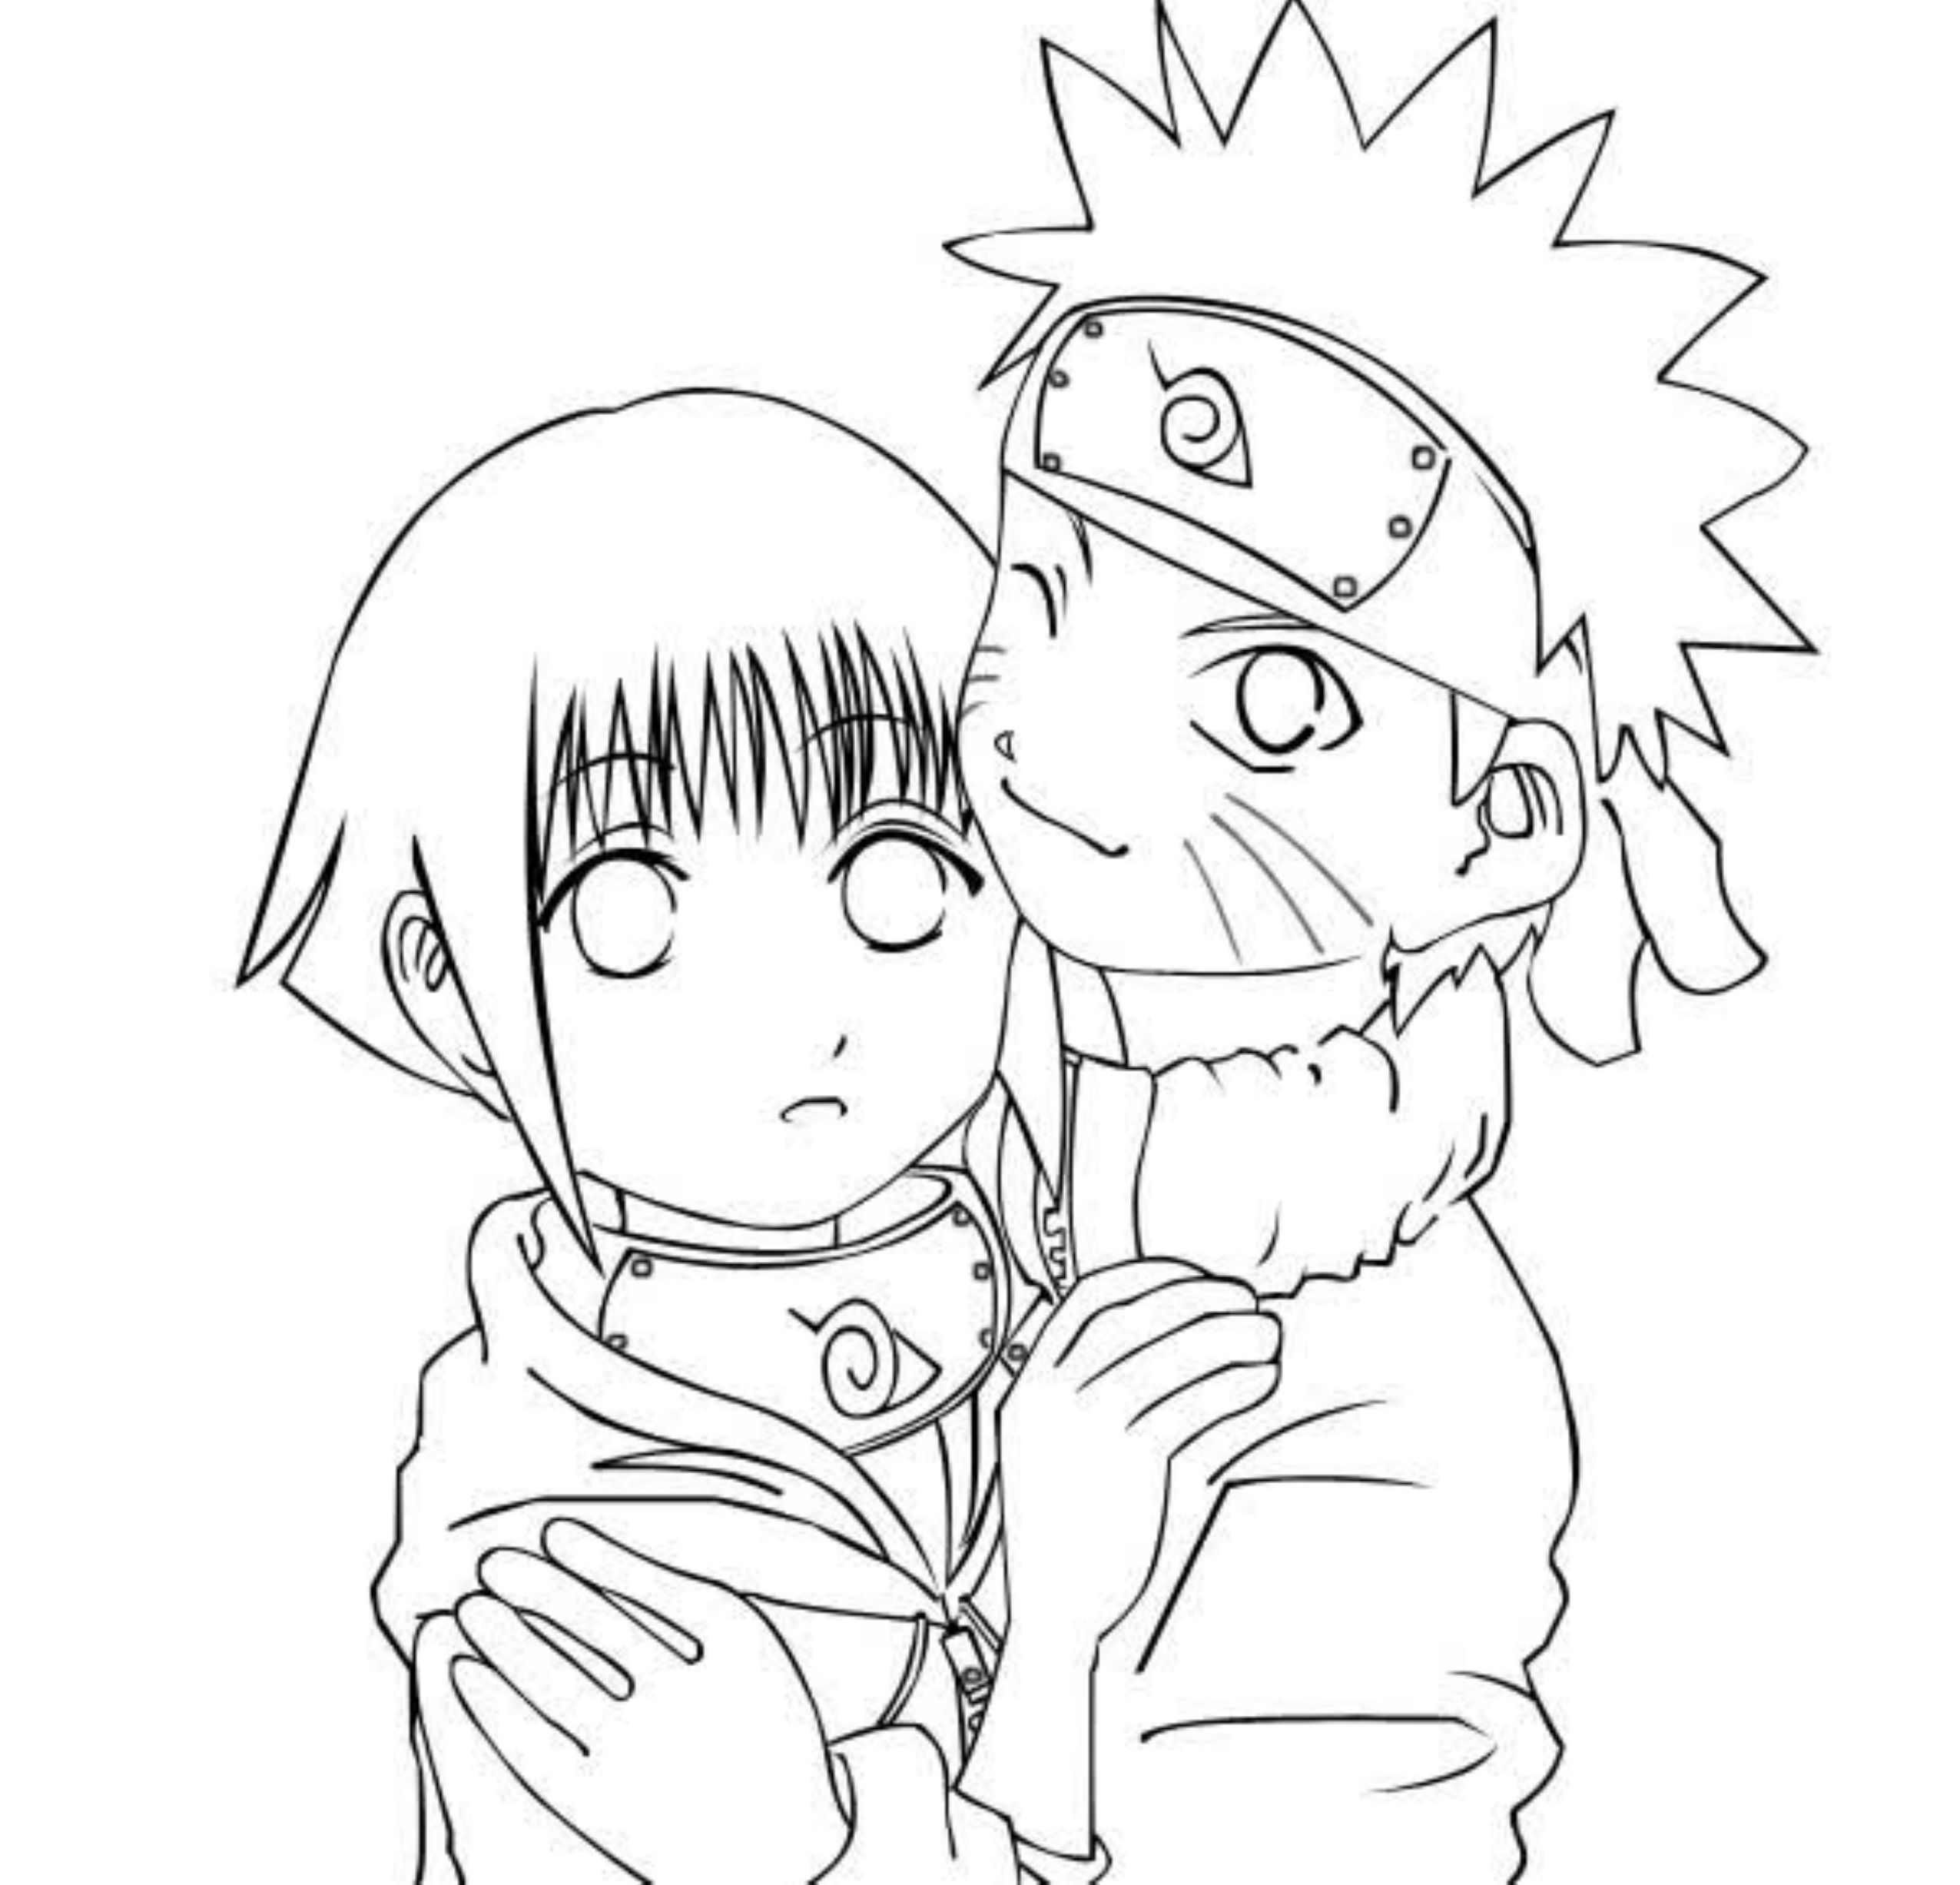 30 Brilliant Photo Of Naruto Coloring Pages Albanysinsanity Com Naruto Drawings Coloring Pages Cartoon Coloring Pages